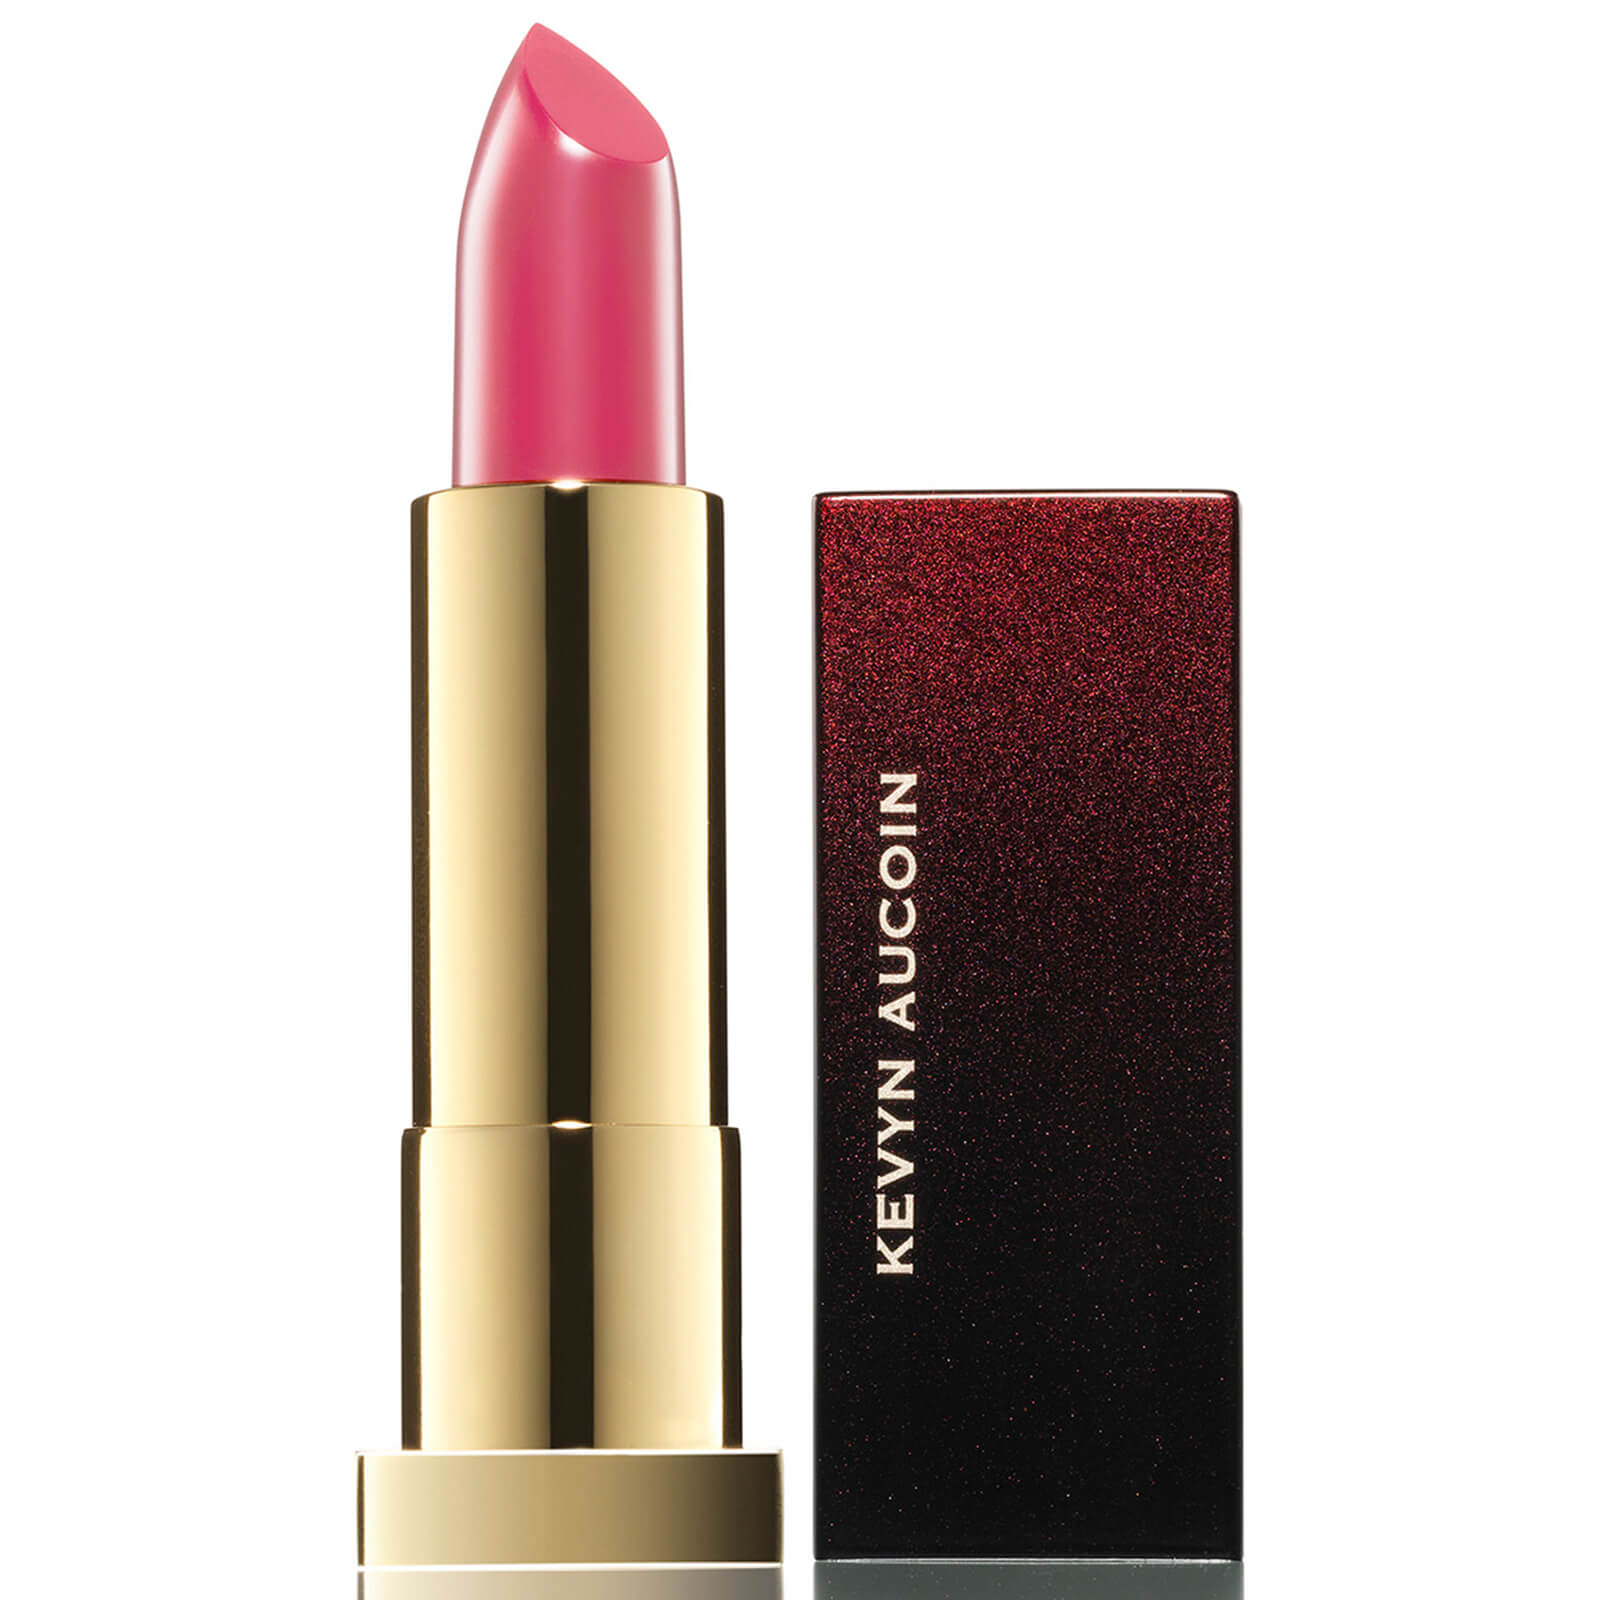 kevyn aucoin the expert lip color (various shades) beautyexpert  Neu Rover Lakes Blau Schnrschuhe Herren Outlet P 320 #4